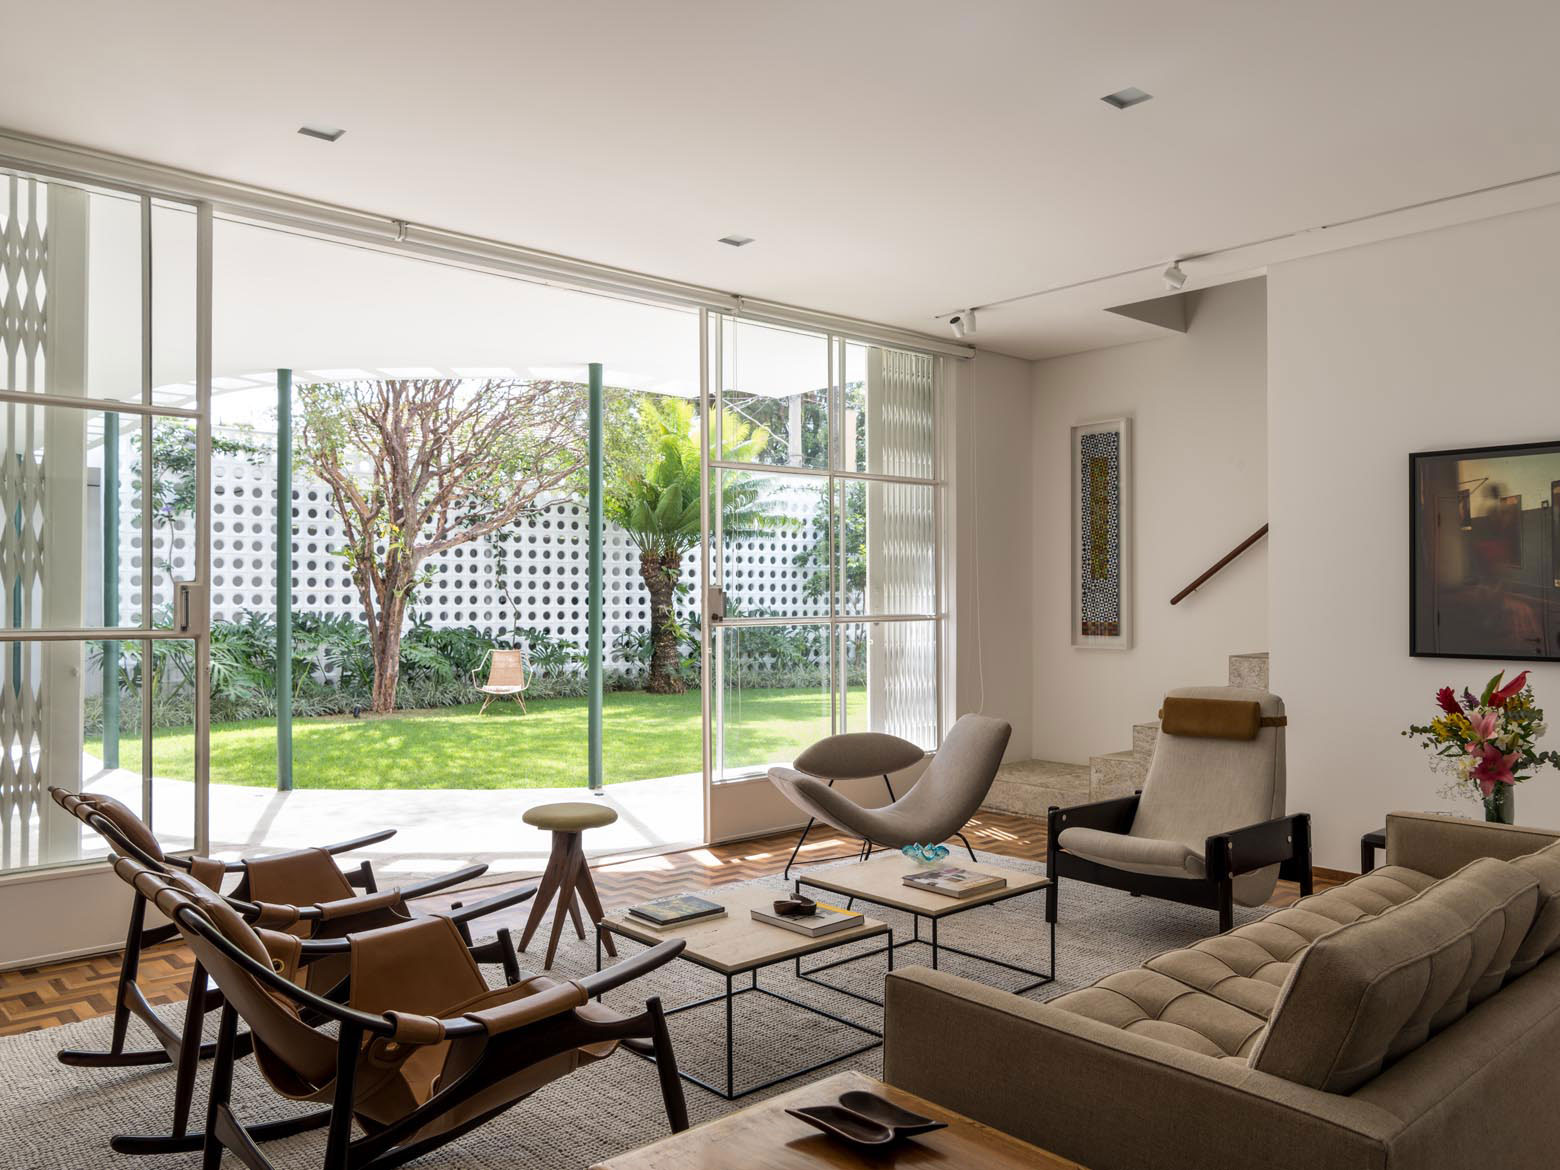 1940s modernist gem in brazil gets gorgeous restoration and expansion